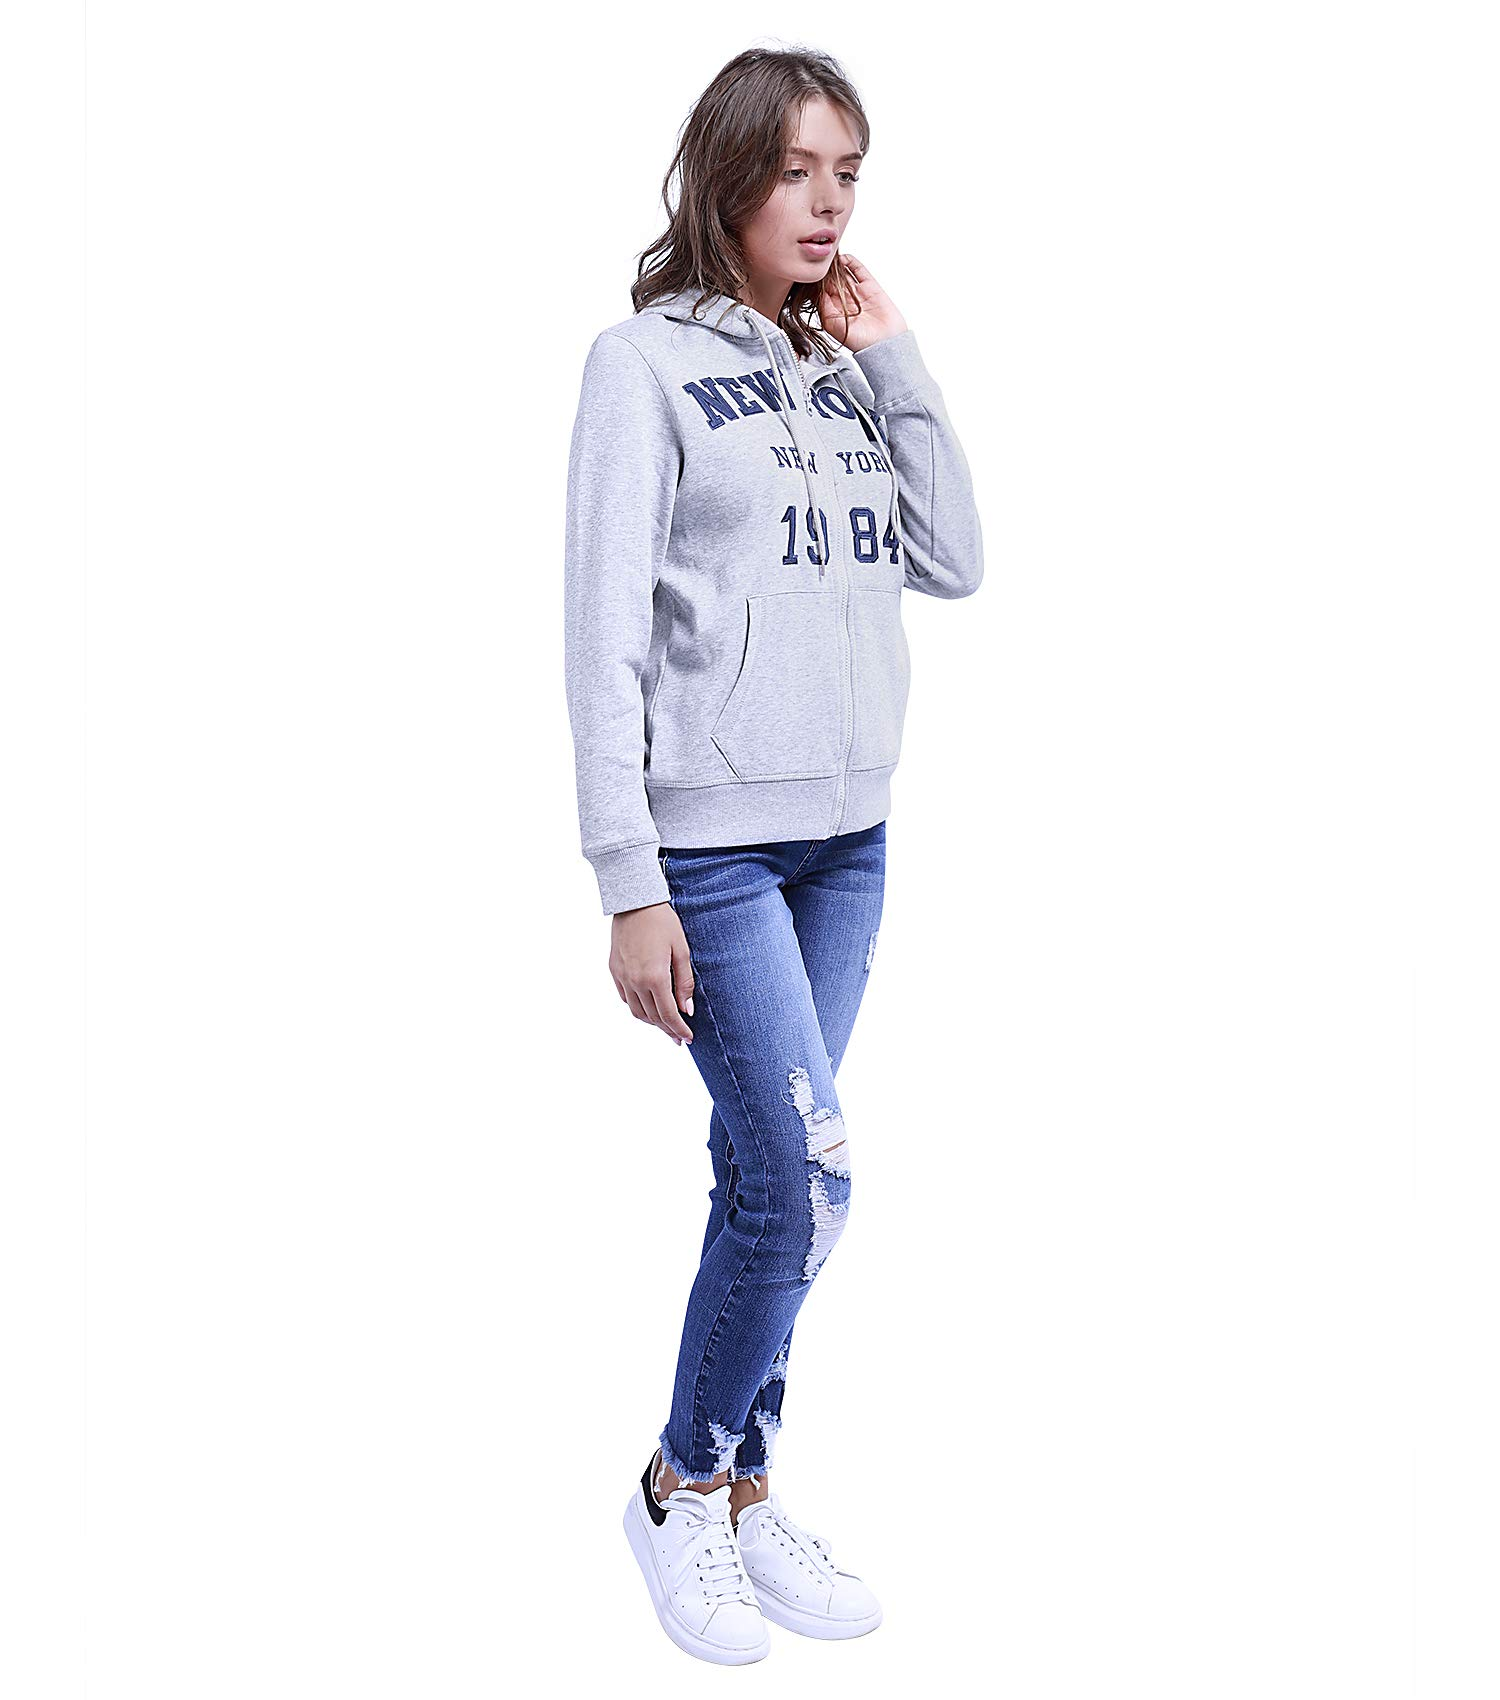 TWO BLOCKS OFF Womens Pull Over Hoodie Long Sleeve with Pockets Casual Pullover Sweatshirt Tops Light Grey Size S by TWO BLOCKS OFF (Image #2)